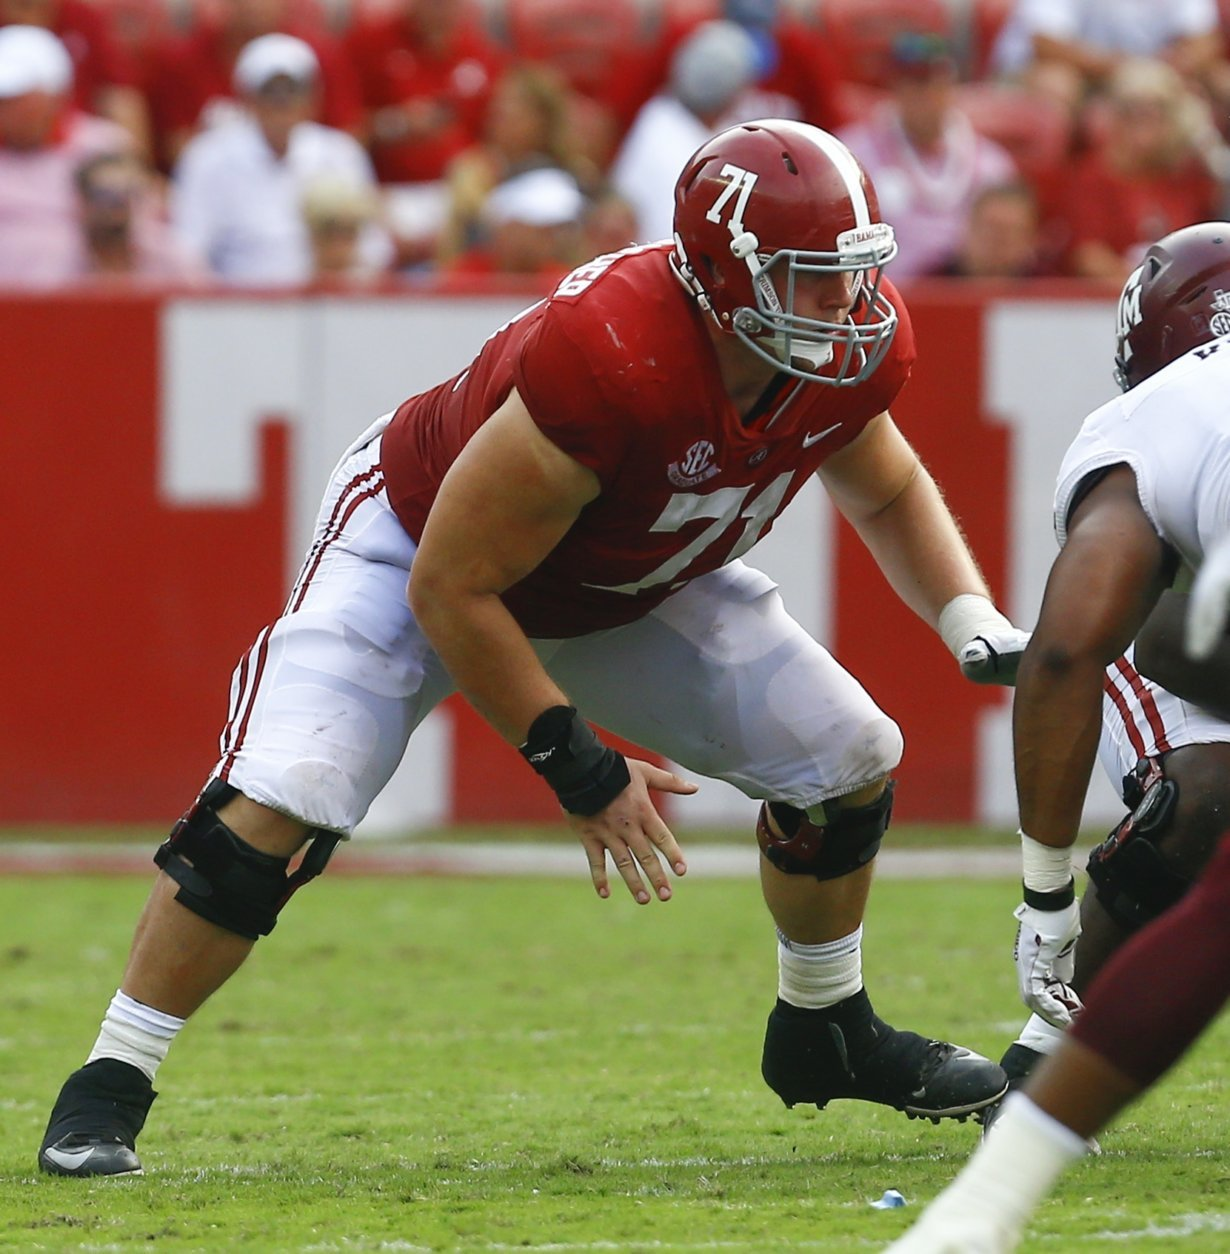 FILE - In this Sept. 22, 2018, file photo, Alabama offensive lineman Ross Pierschbacher (71) blocks out against Texas A&M during the second half of an NCAA college football game, in Tuscaloosa, Ala. Pierschbacher was named to The Associated Press Midseason All-America team, Tuesday, Oct. 16, 2018.(AP Photo/Butch Dill, File)